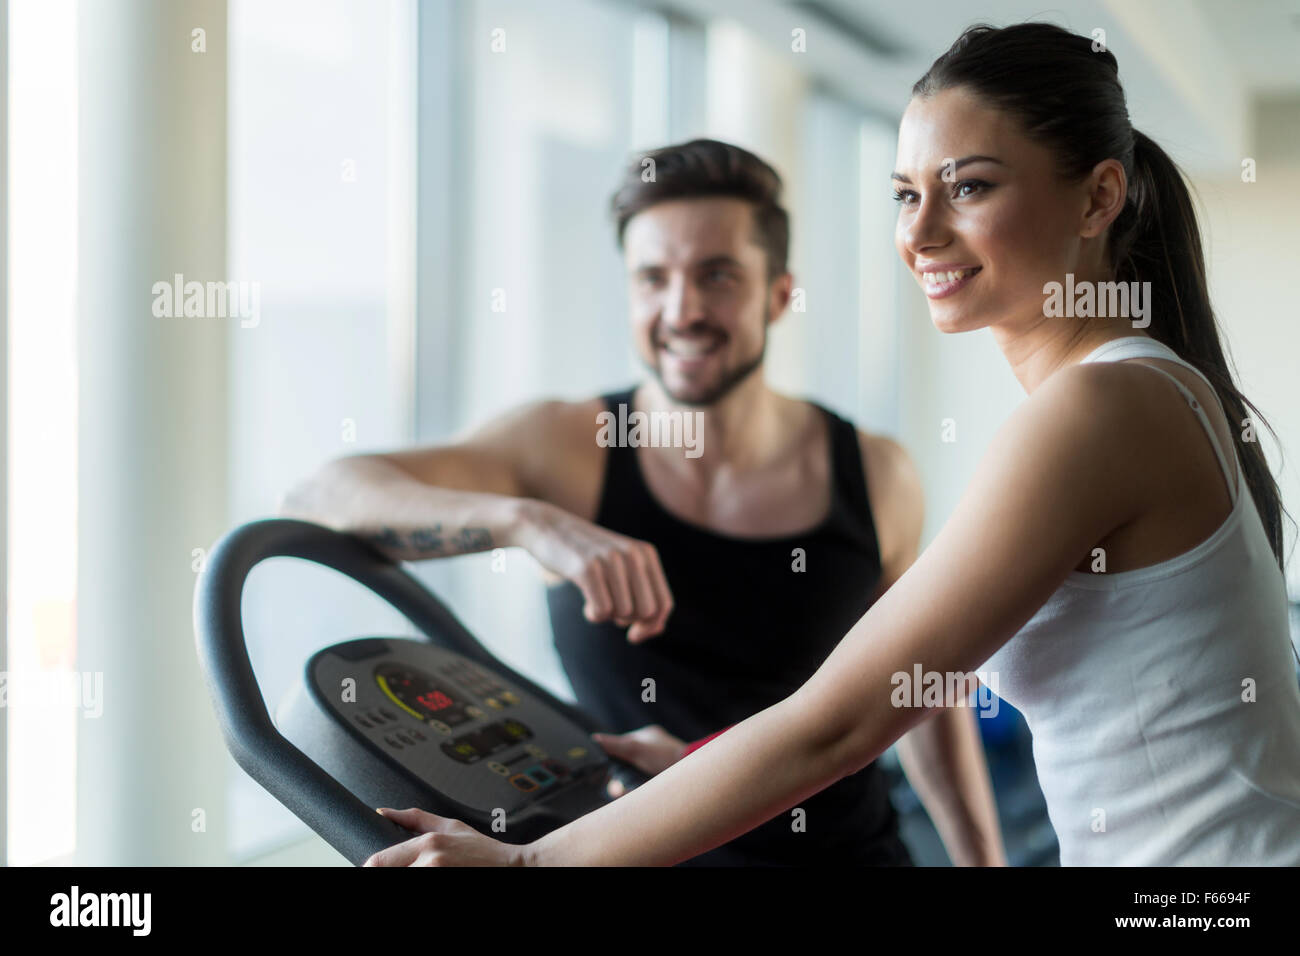 Beautiful, young people talking in a gym while working out and burning calories Stock Photo